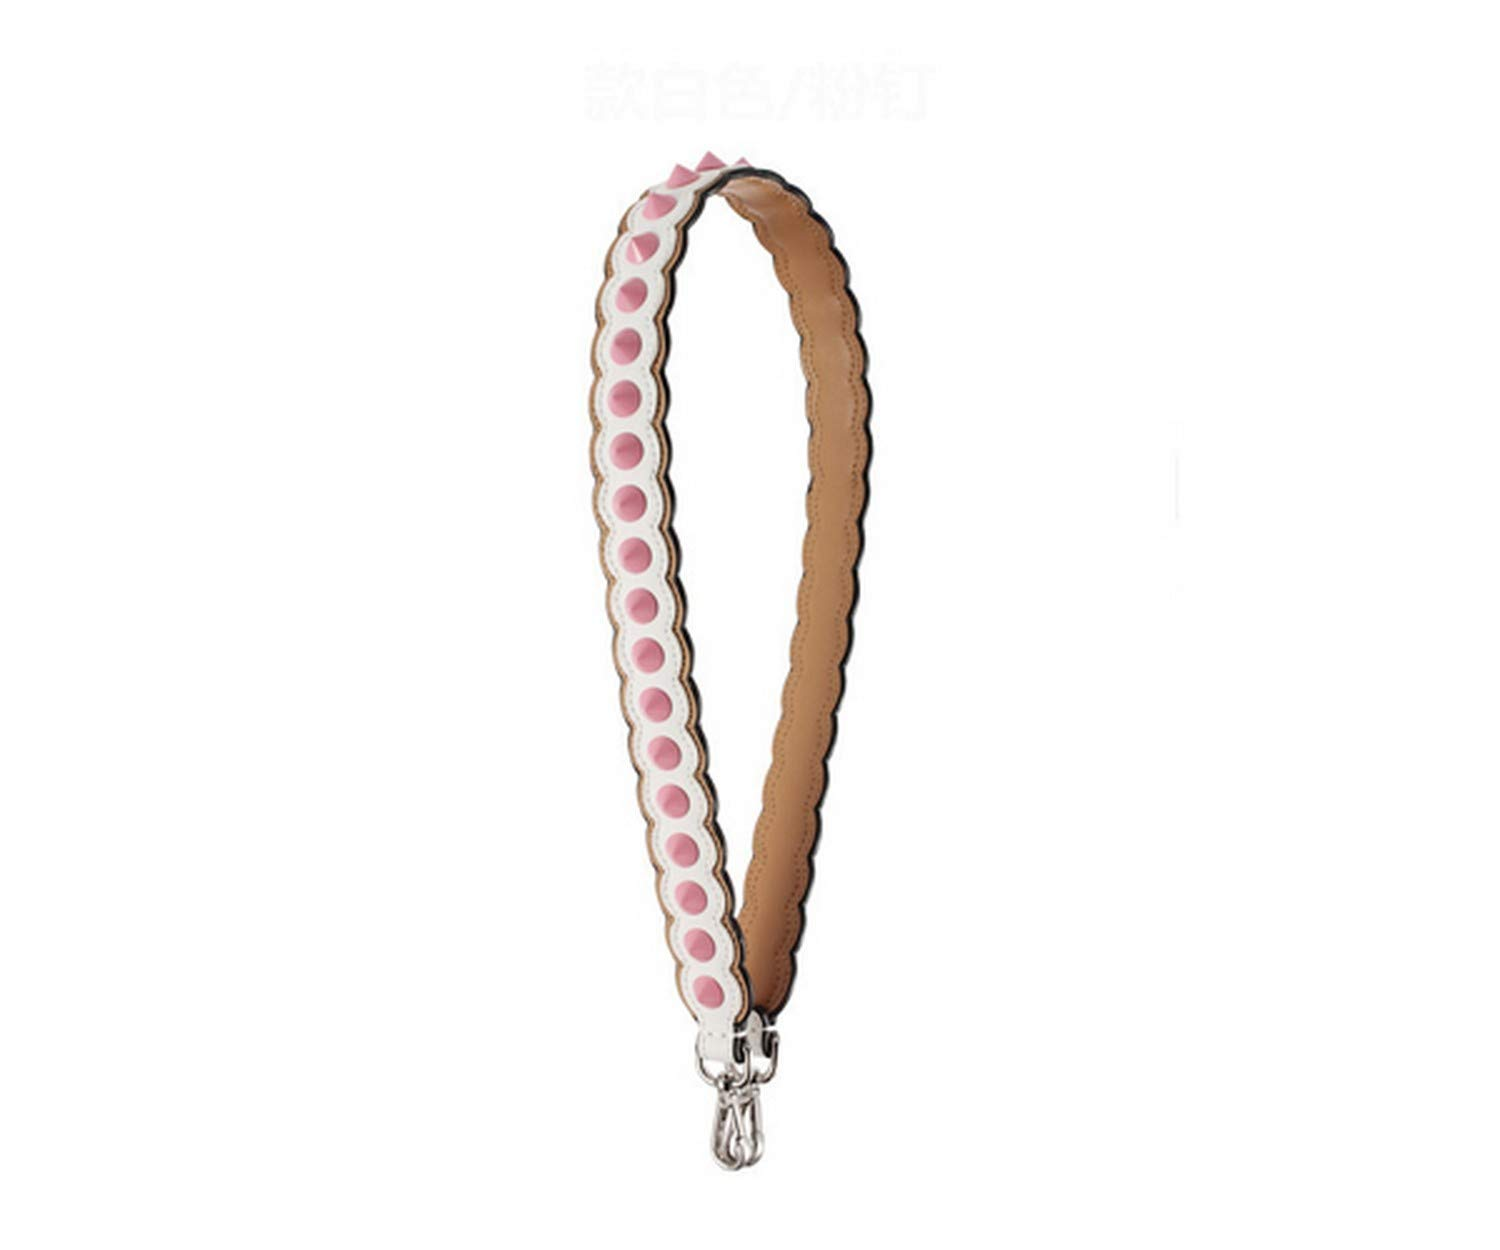 Woman Bag Strap Leather Short Strap with Studs Strapper You Bag Accessories Ladies Shoulder Strap